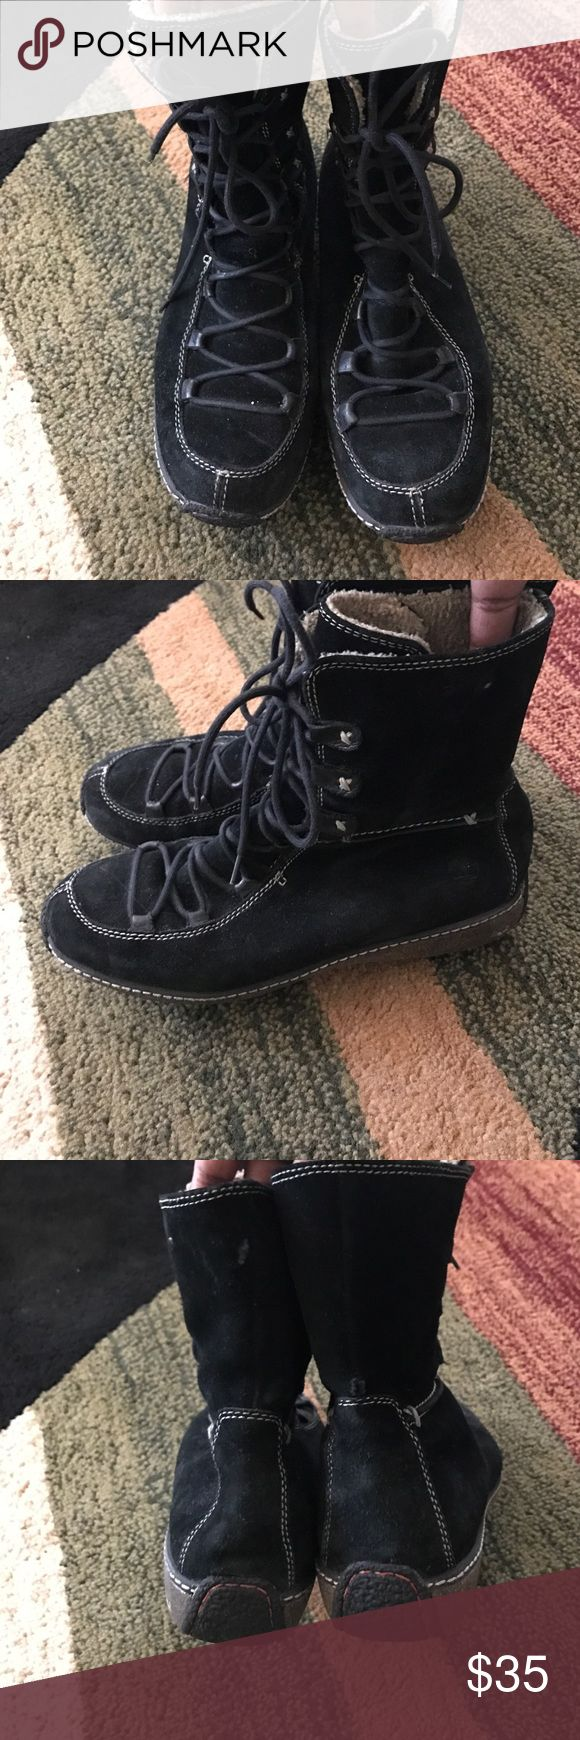 TIMBERLAND ALL WEATHER BOOTS TIMBERLAND ALL WEATHER SUEDE LACE UP BOOTS- BLACK TIMBERLAND Shoes Ankle Boots & Booties